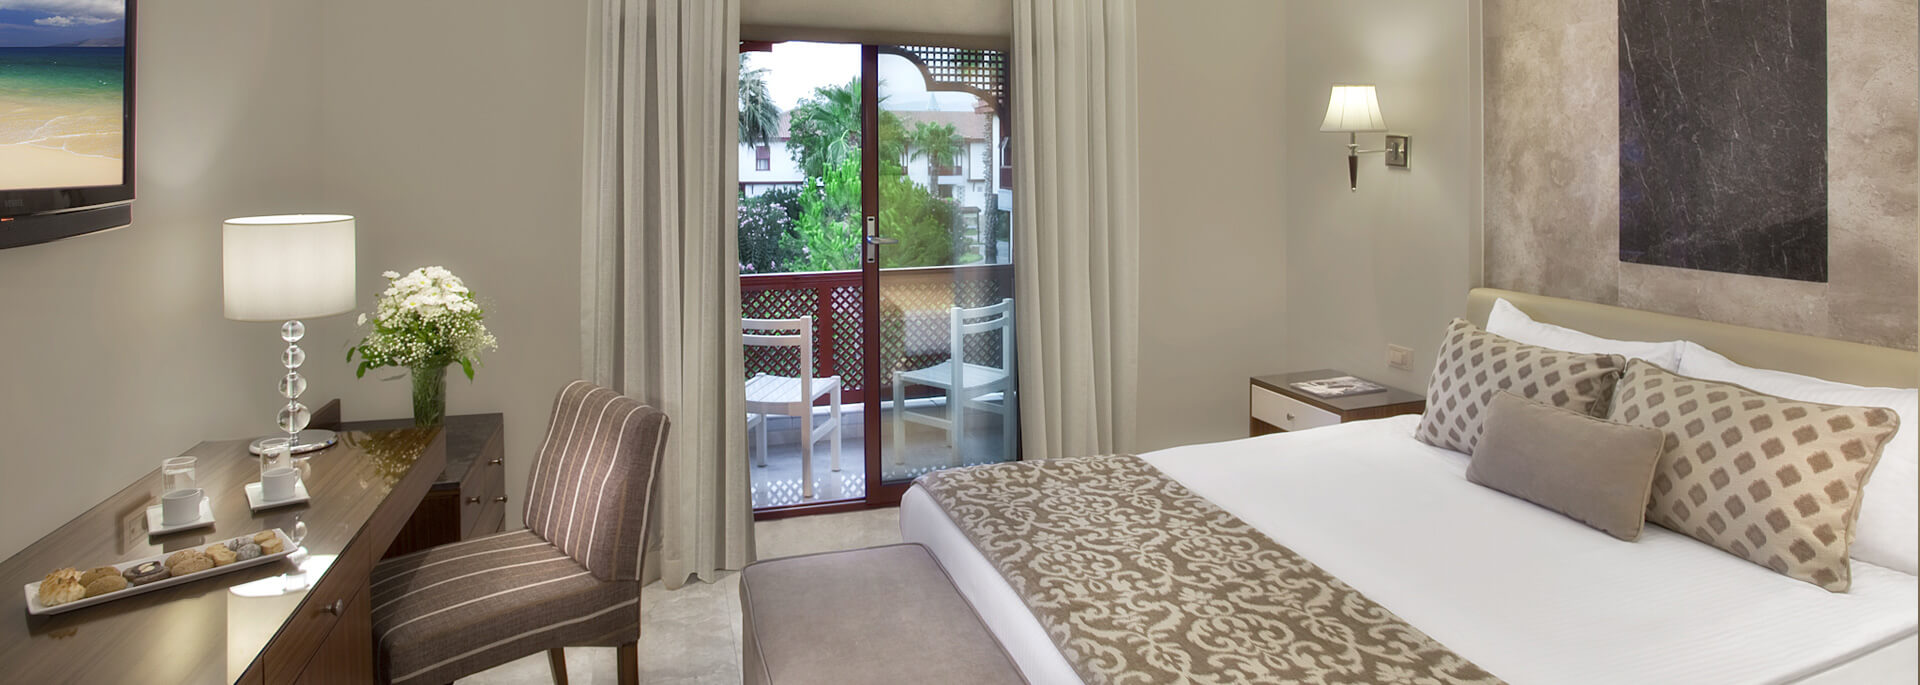 Rooms - Ali Bey Park Manavgat - Side, Antalya, Turkey